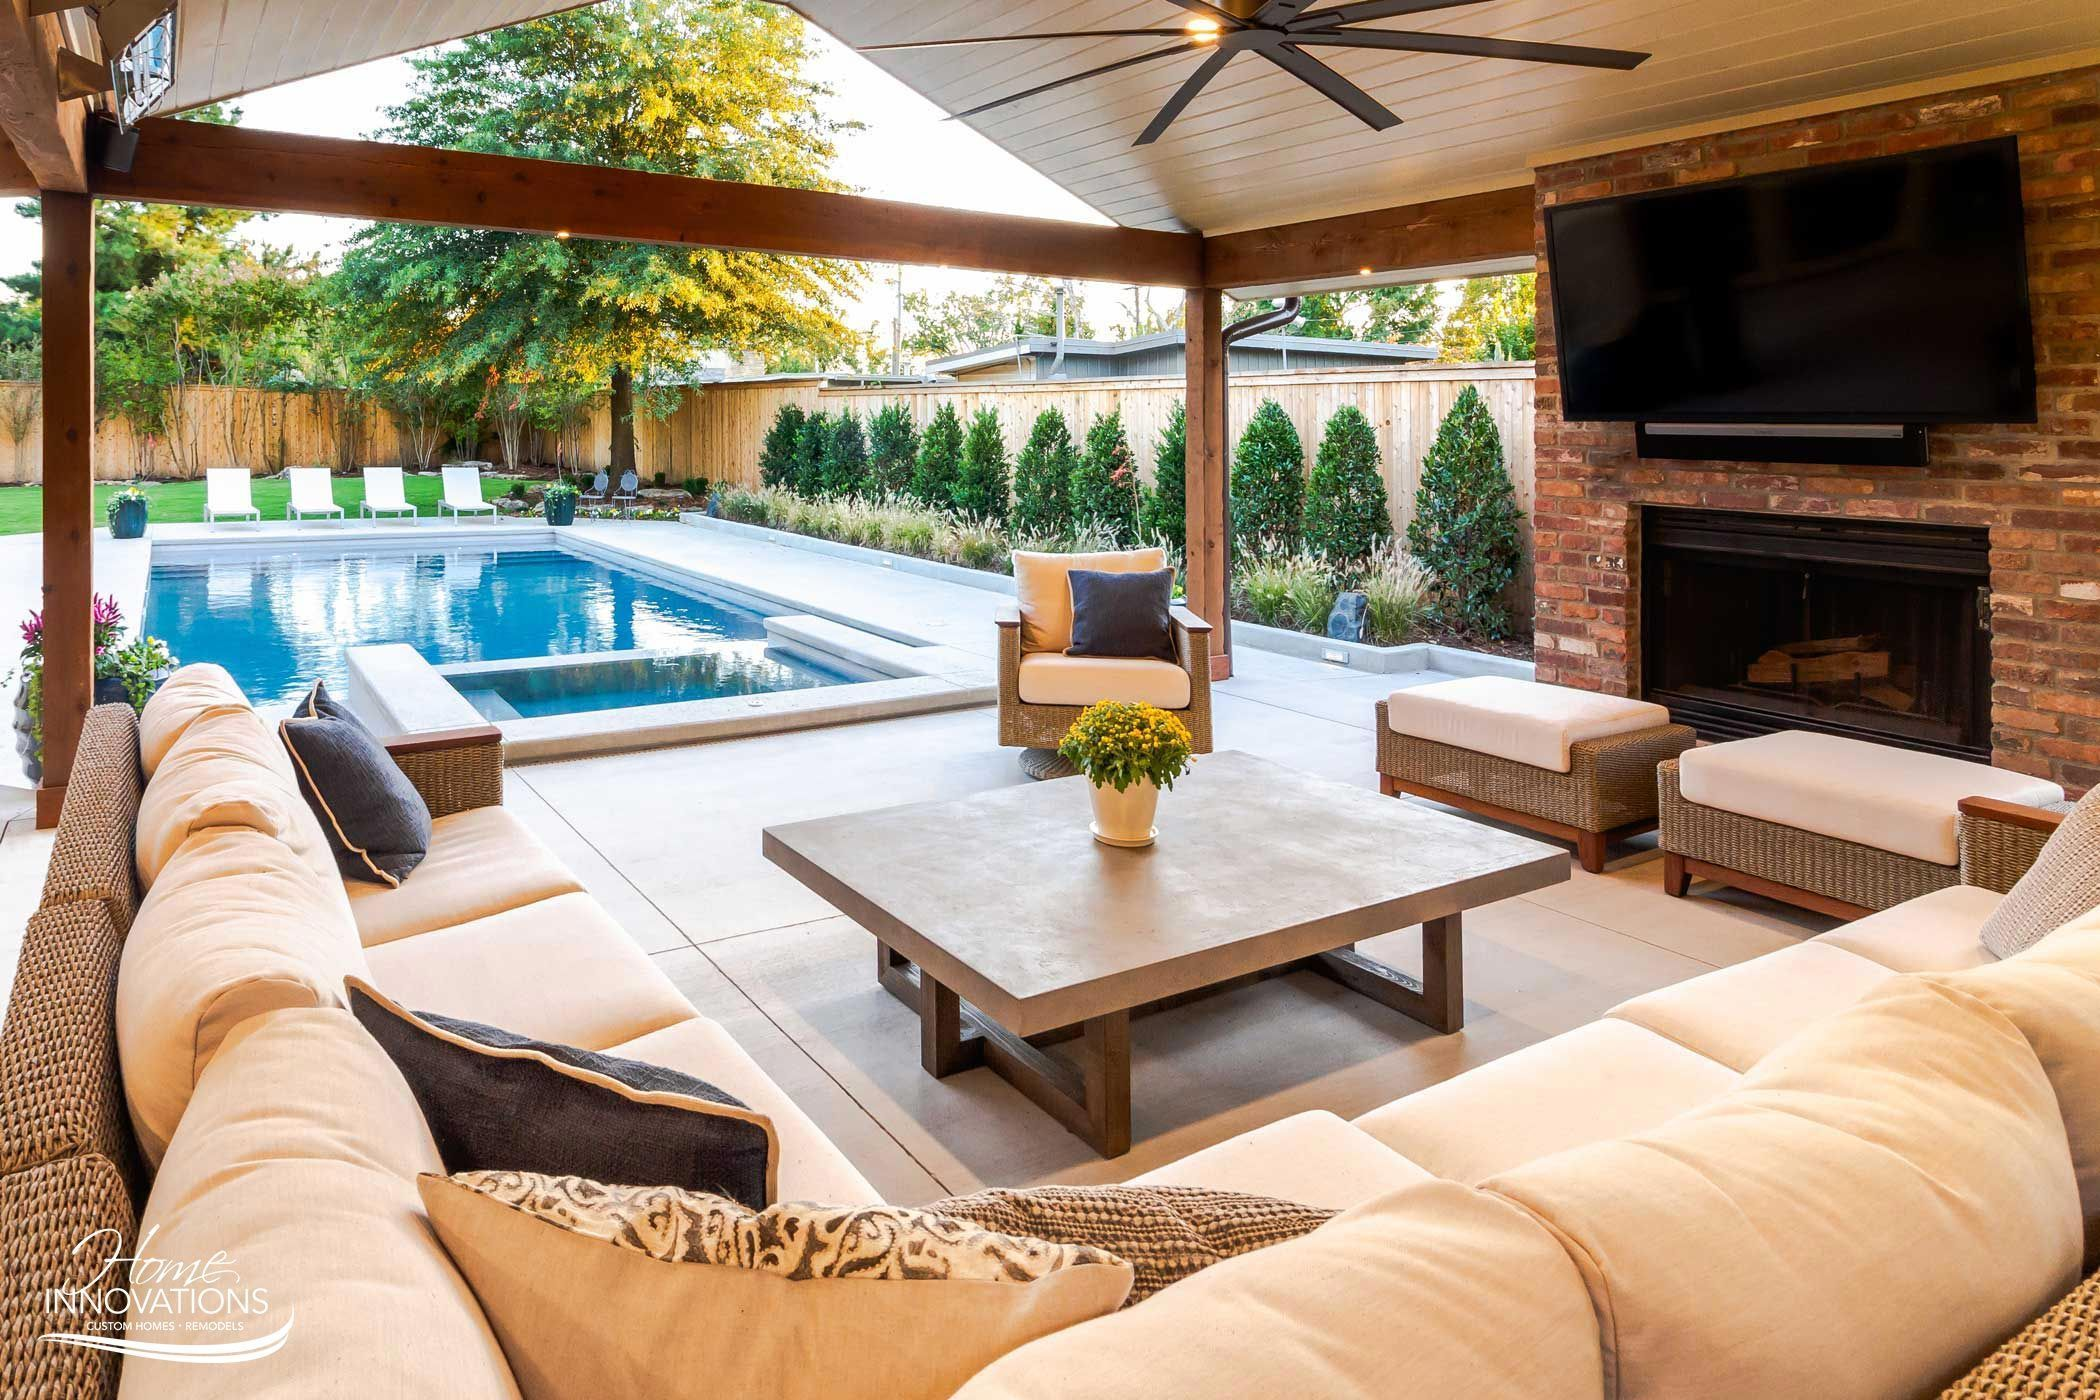 Outdoor Remodel Tulsa Oklahoma Swimming Pool Hot Tub Outdoor Kitchen Livi In 2020 Outdoor Living Space Design Outdoor Living Rooms Outdoor Remodel